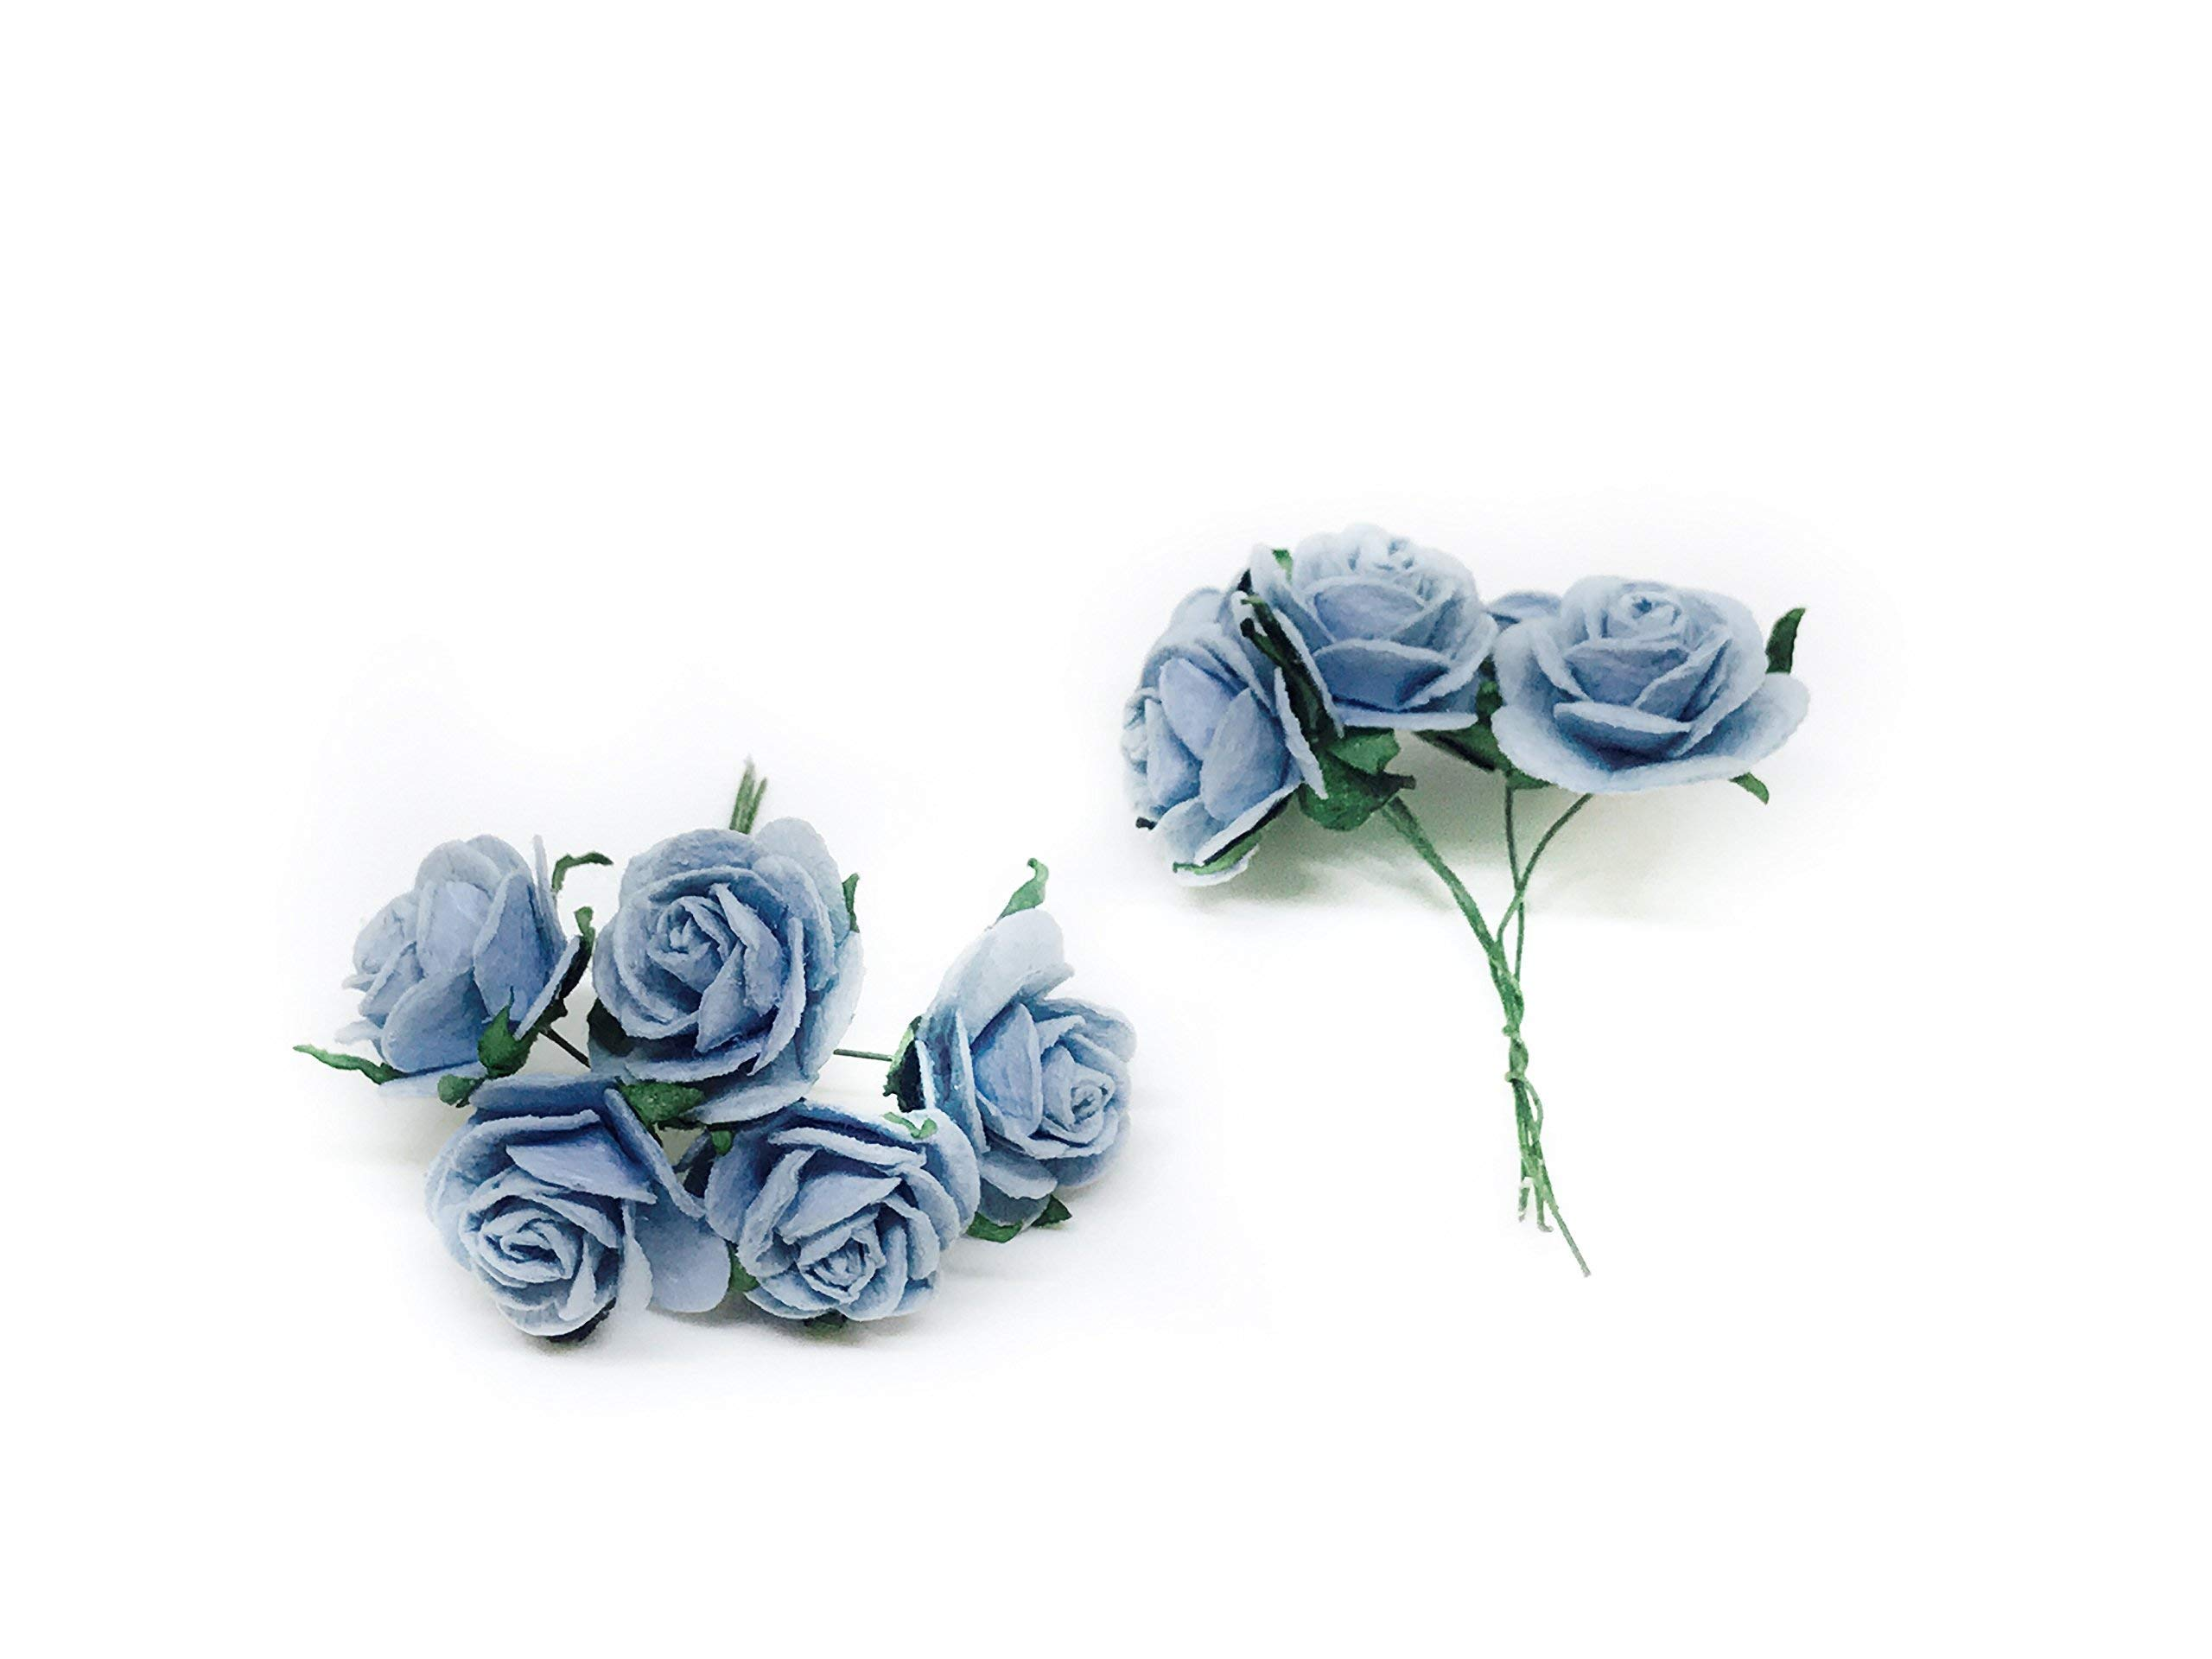 1-Blue-Mulberry-Paper-Roses-Mulberry-Paper-Flowers-Miniature-Flowers-Wedding-Flowers-Blue-Wedding-Baby-Shower-Flowers-Artificial-Flowers-20-Pieces